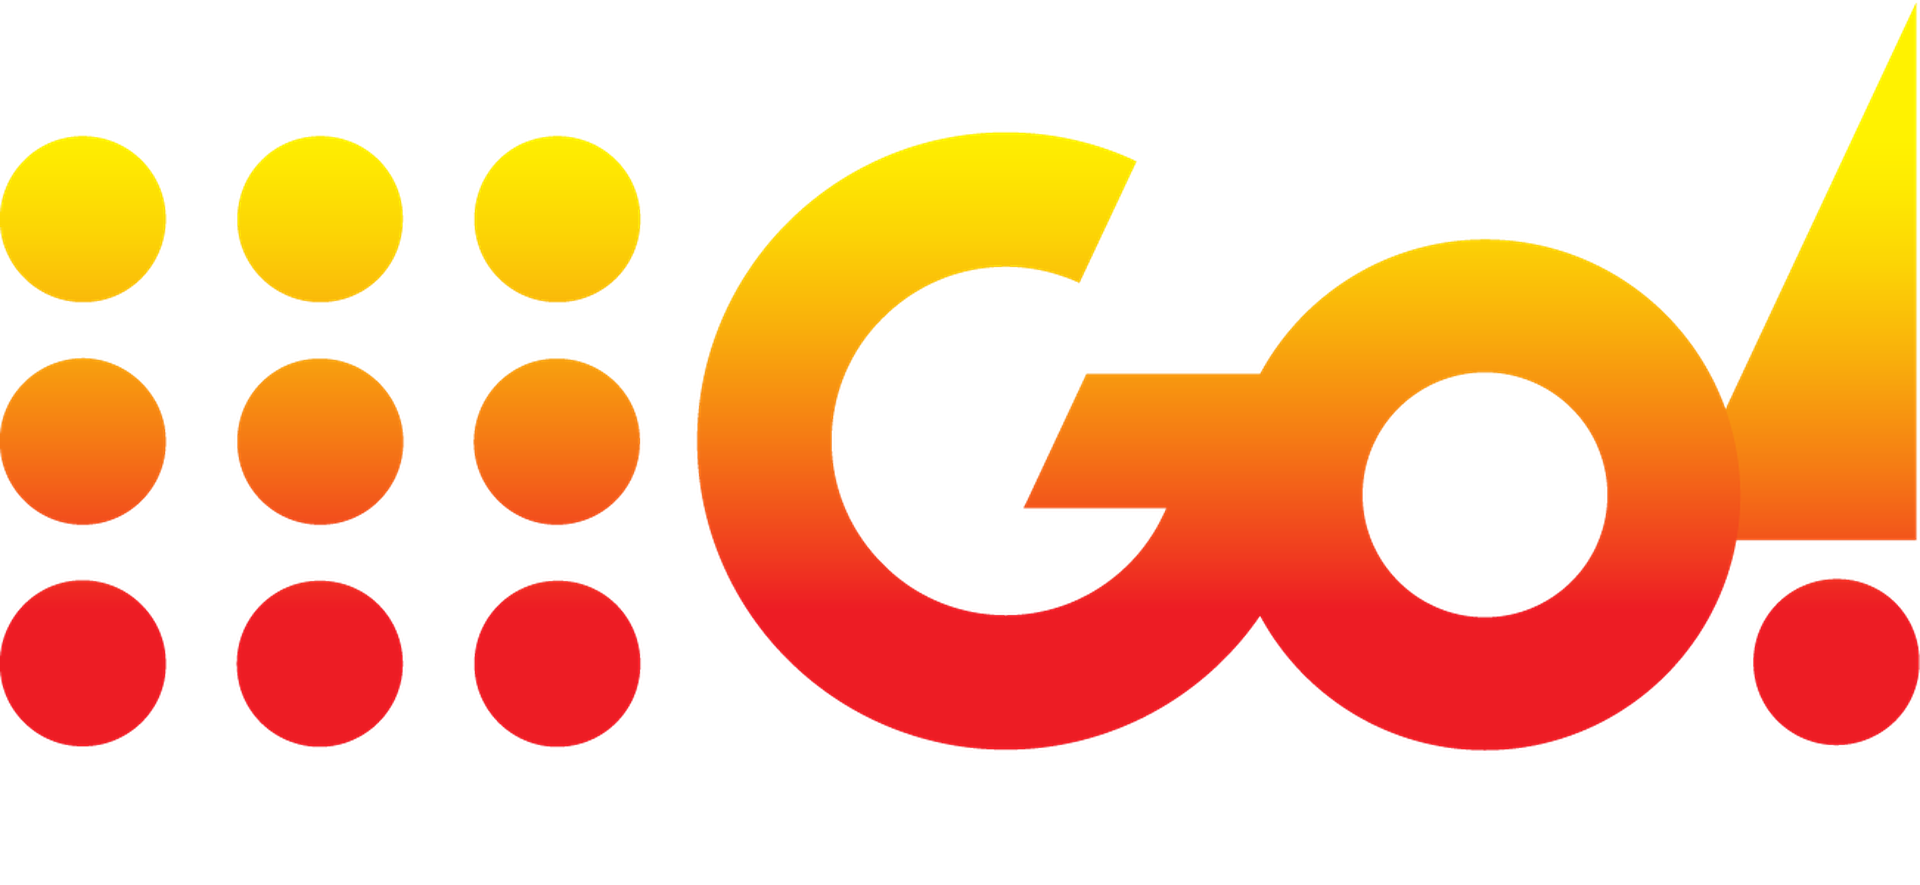 9Go Live Stream: Family TV, Kids Shows, Watch Free Online